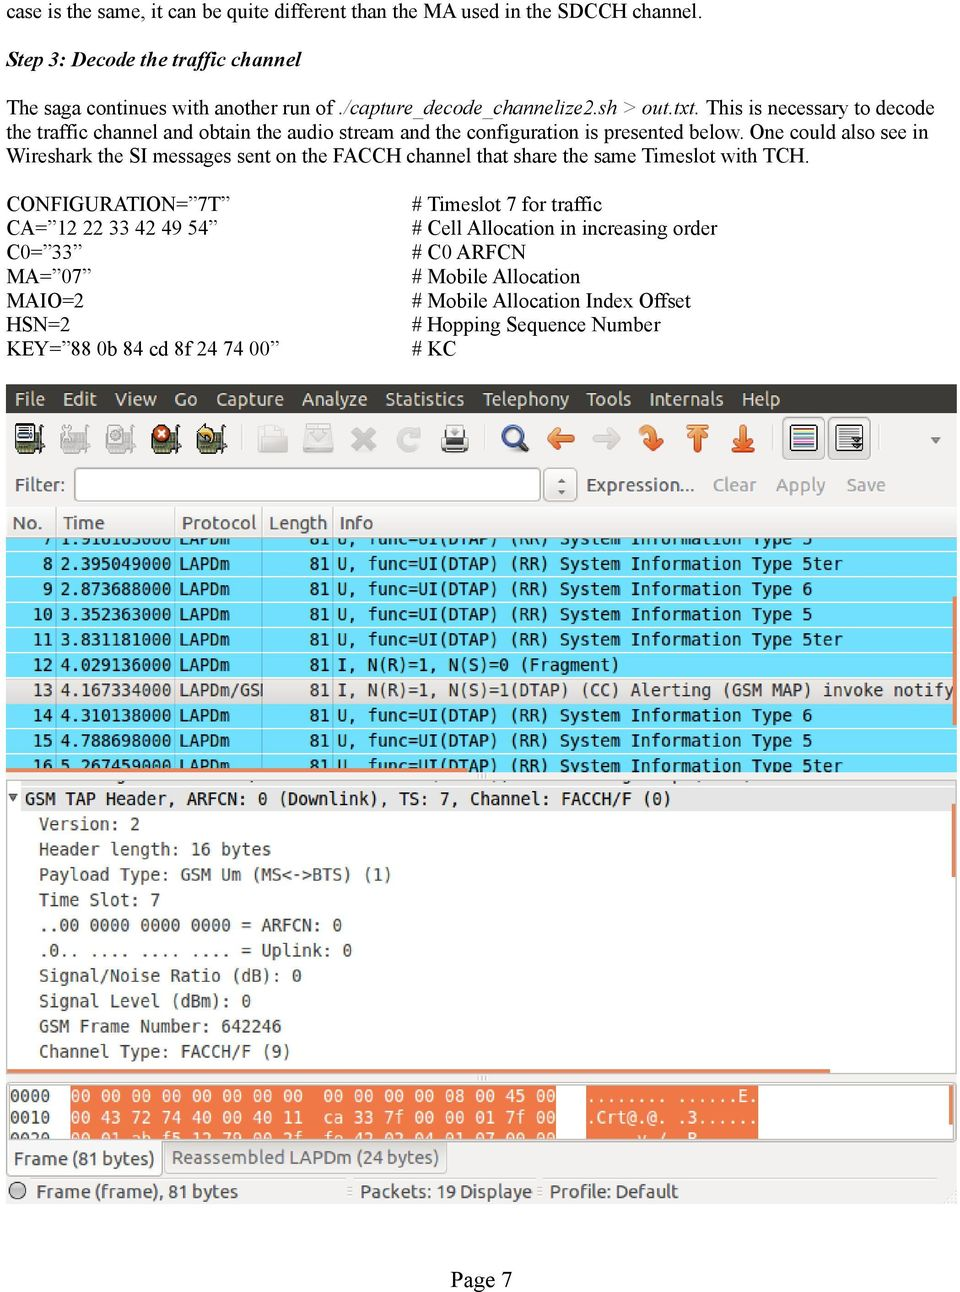 One could also see in Wireshark the SI messages sent on the FACCH channel that share the same Timeslot with TCH.